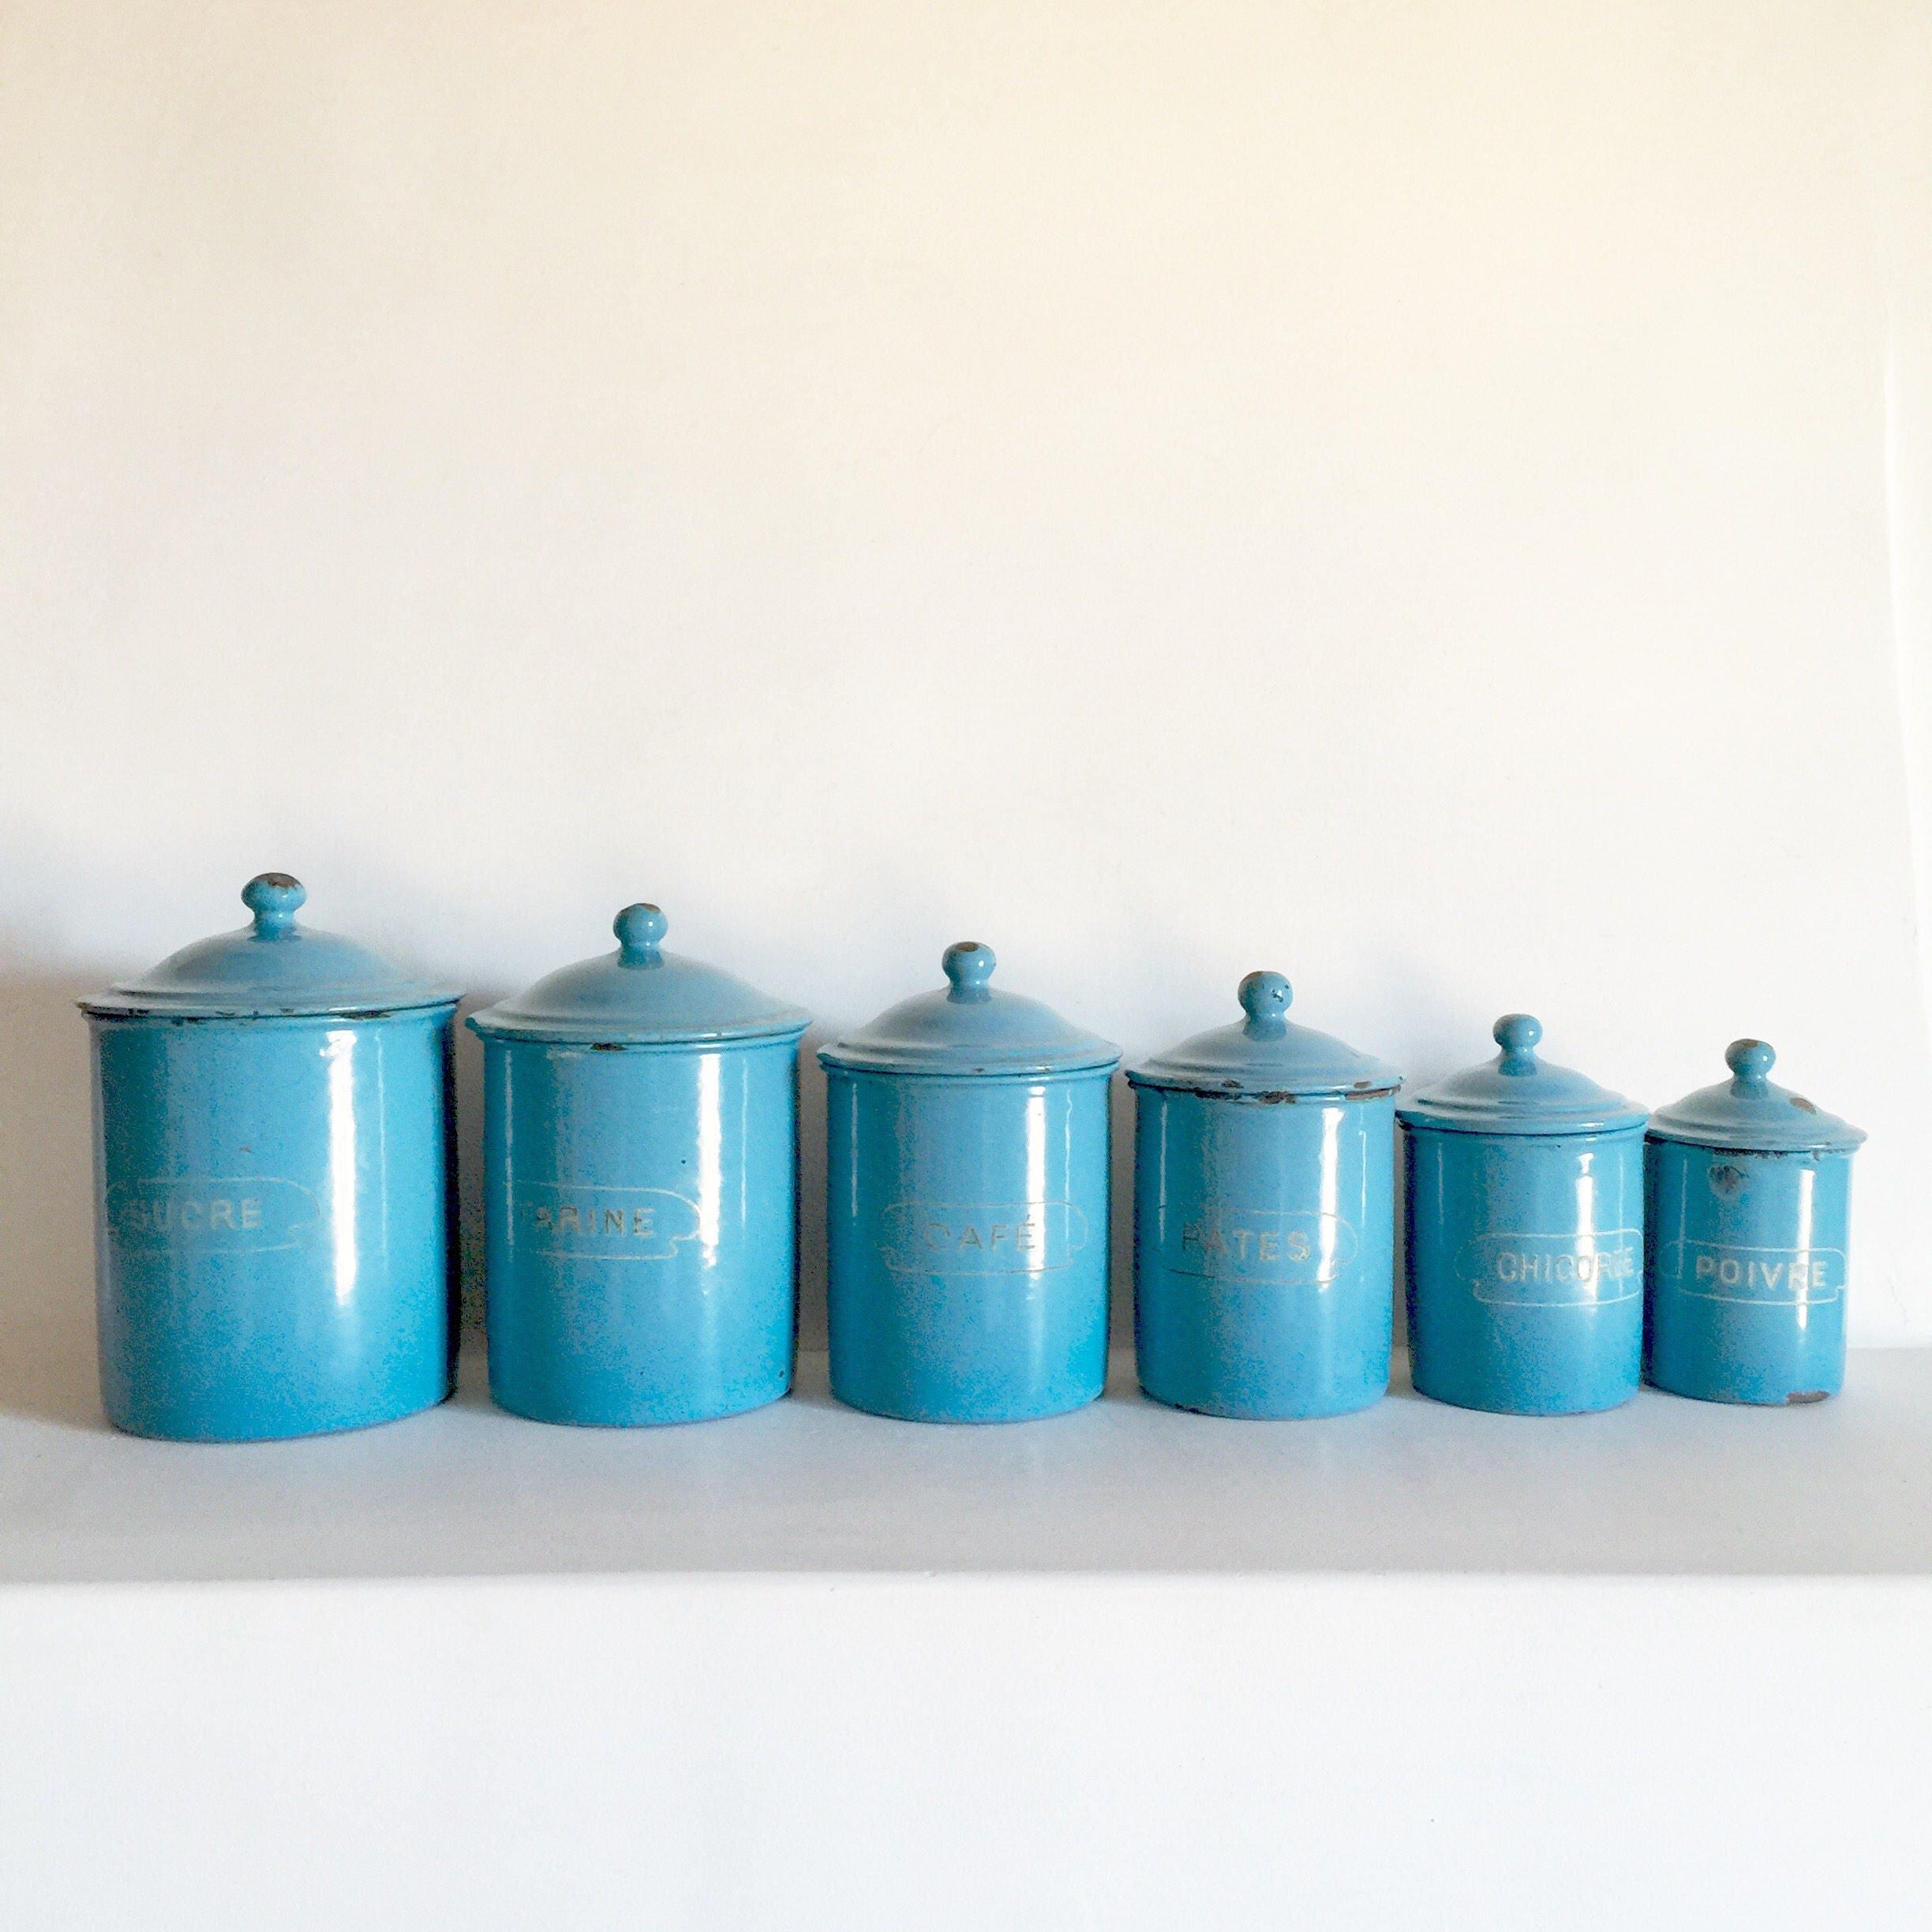 French Antique Enamel Canisters - French Kitchen Canisters - French ...